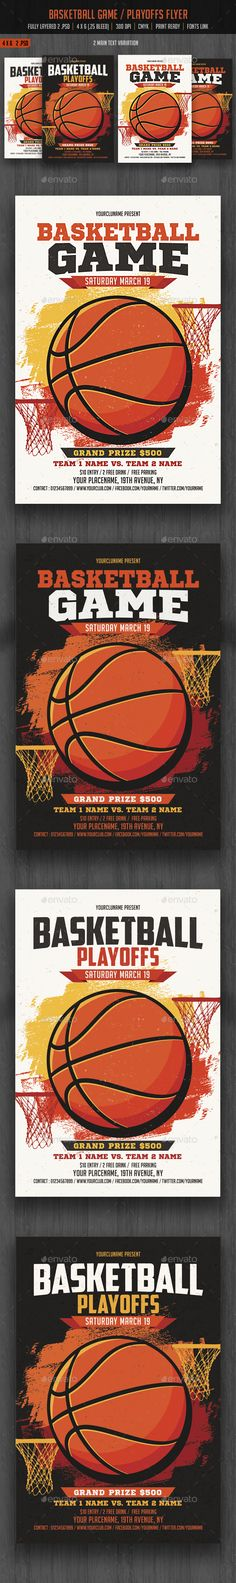 BasketBall Game Flyer Template Basketball games, Psd templates - sports flyer template